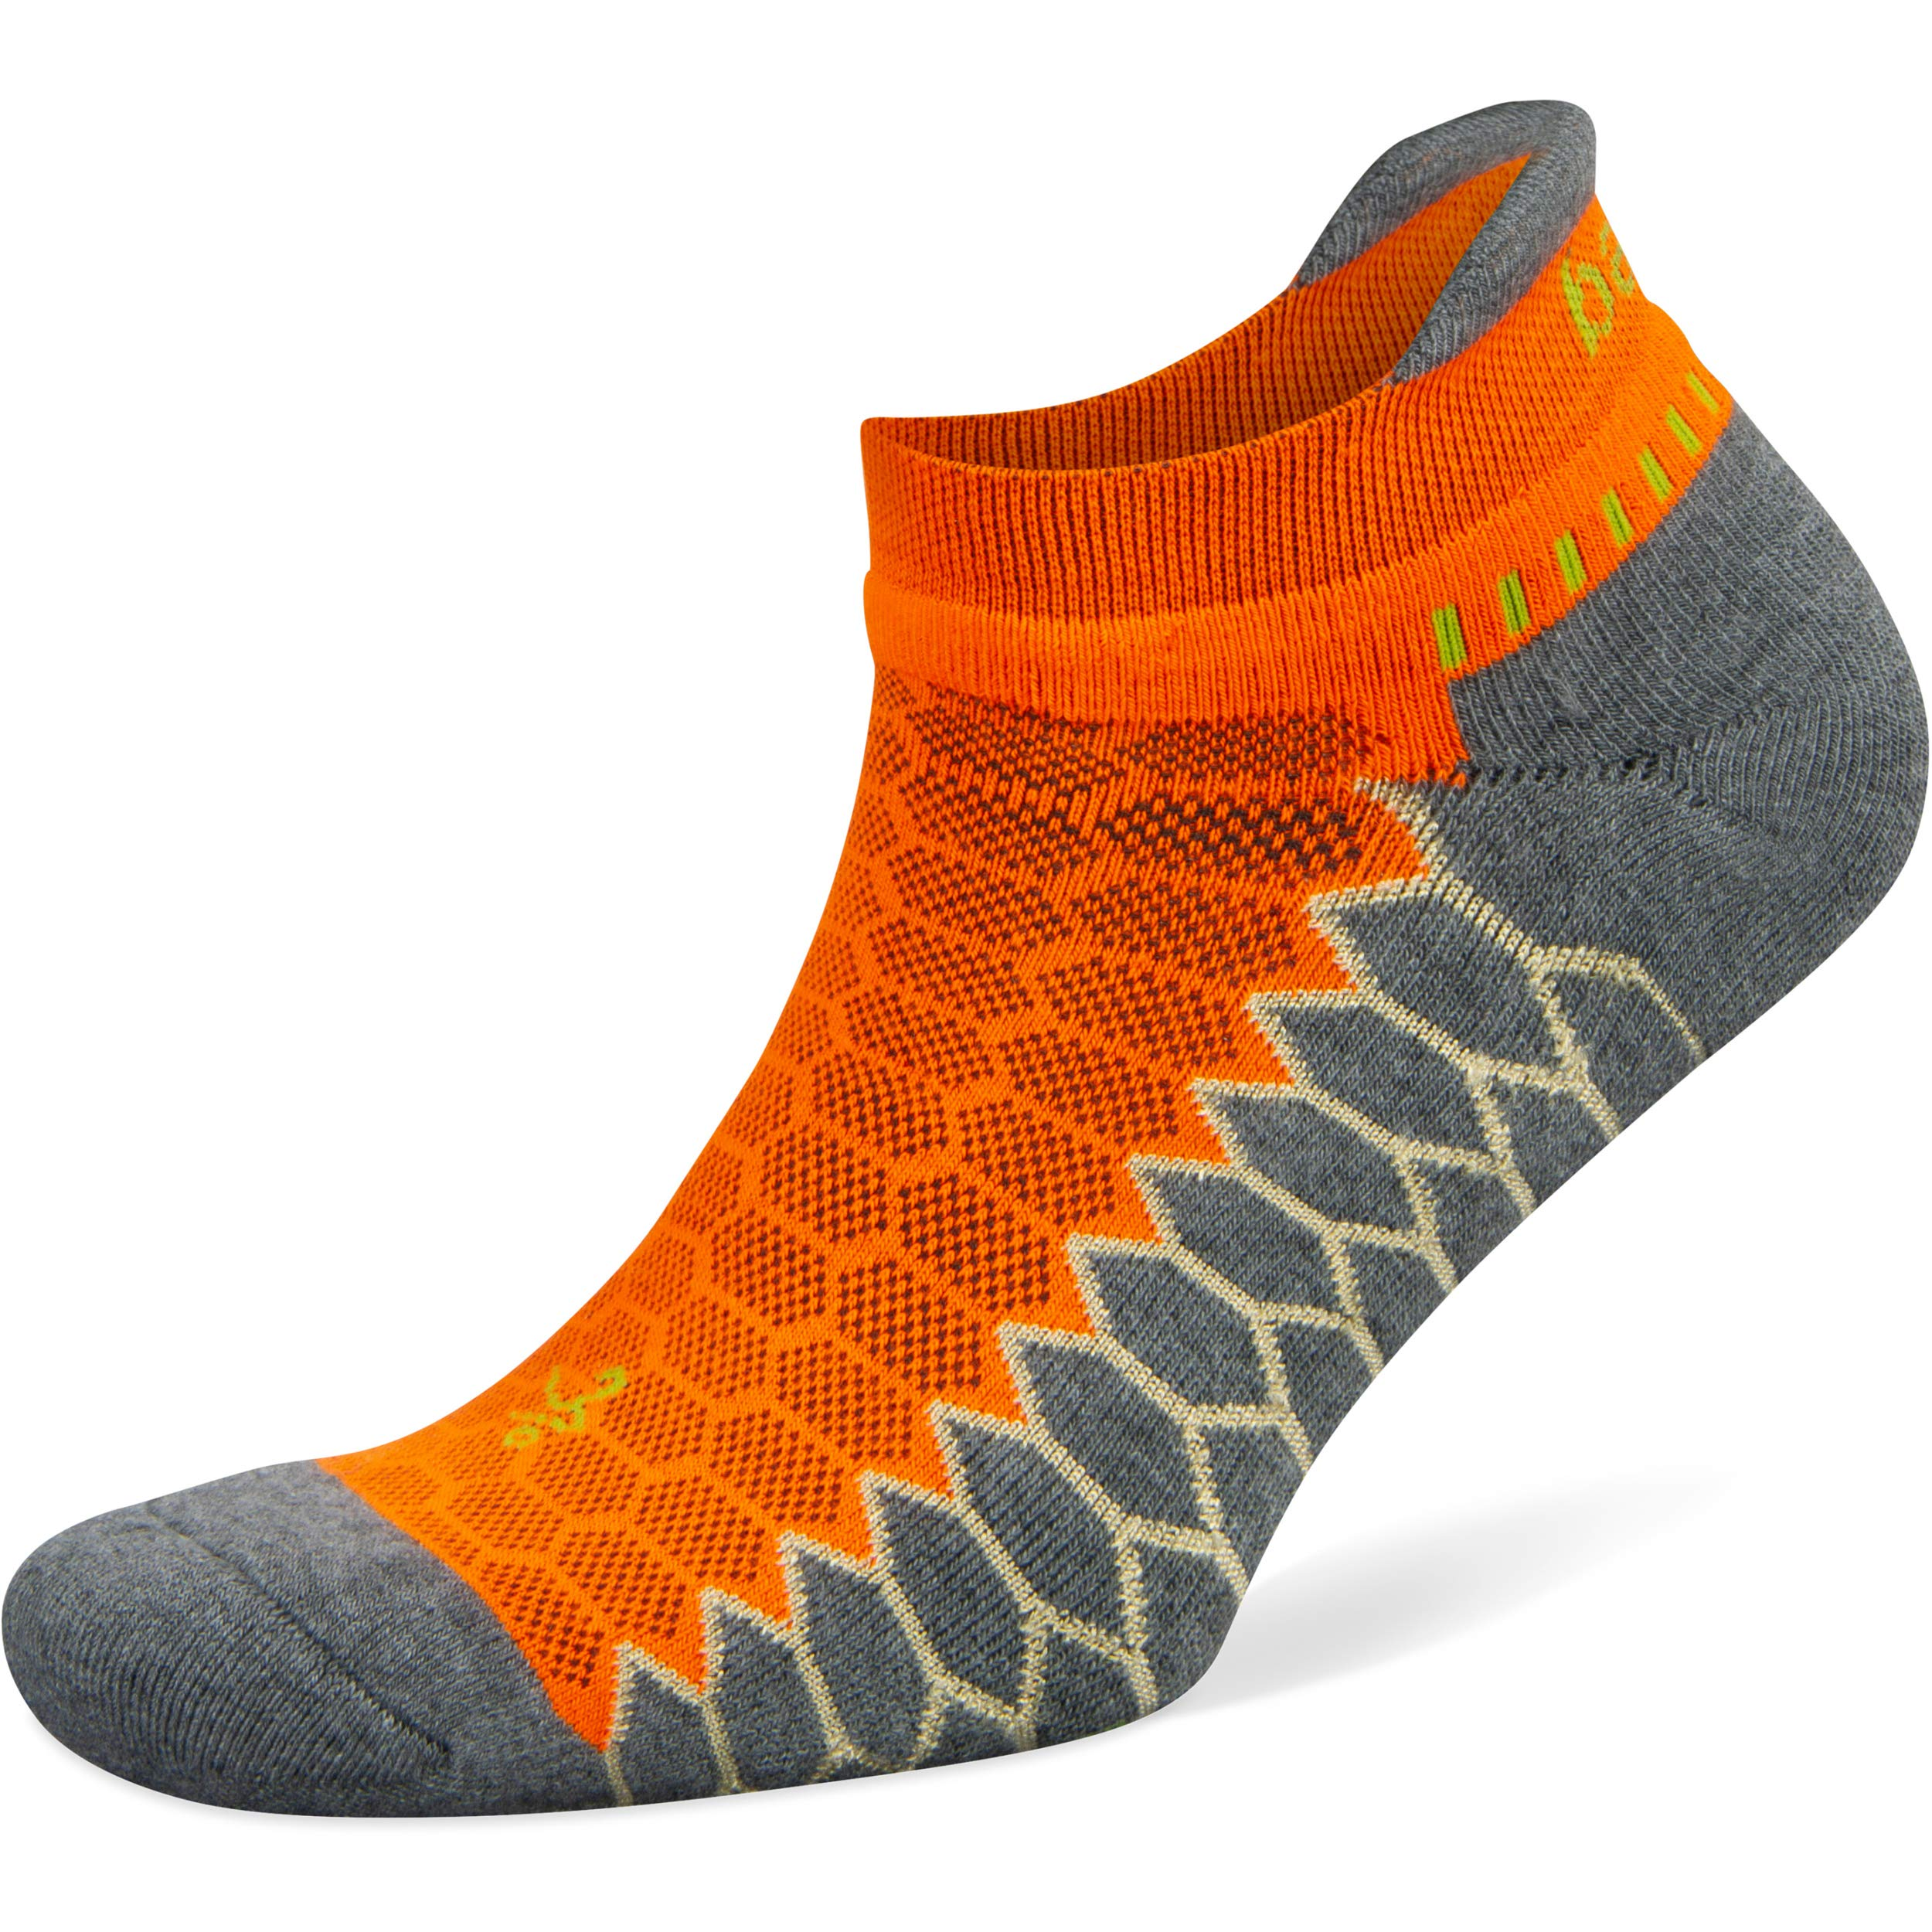 Balega Silver No Show Socks for Men and Women (1 Pair), Neon Orange/Grey Heather, Small by Balega